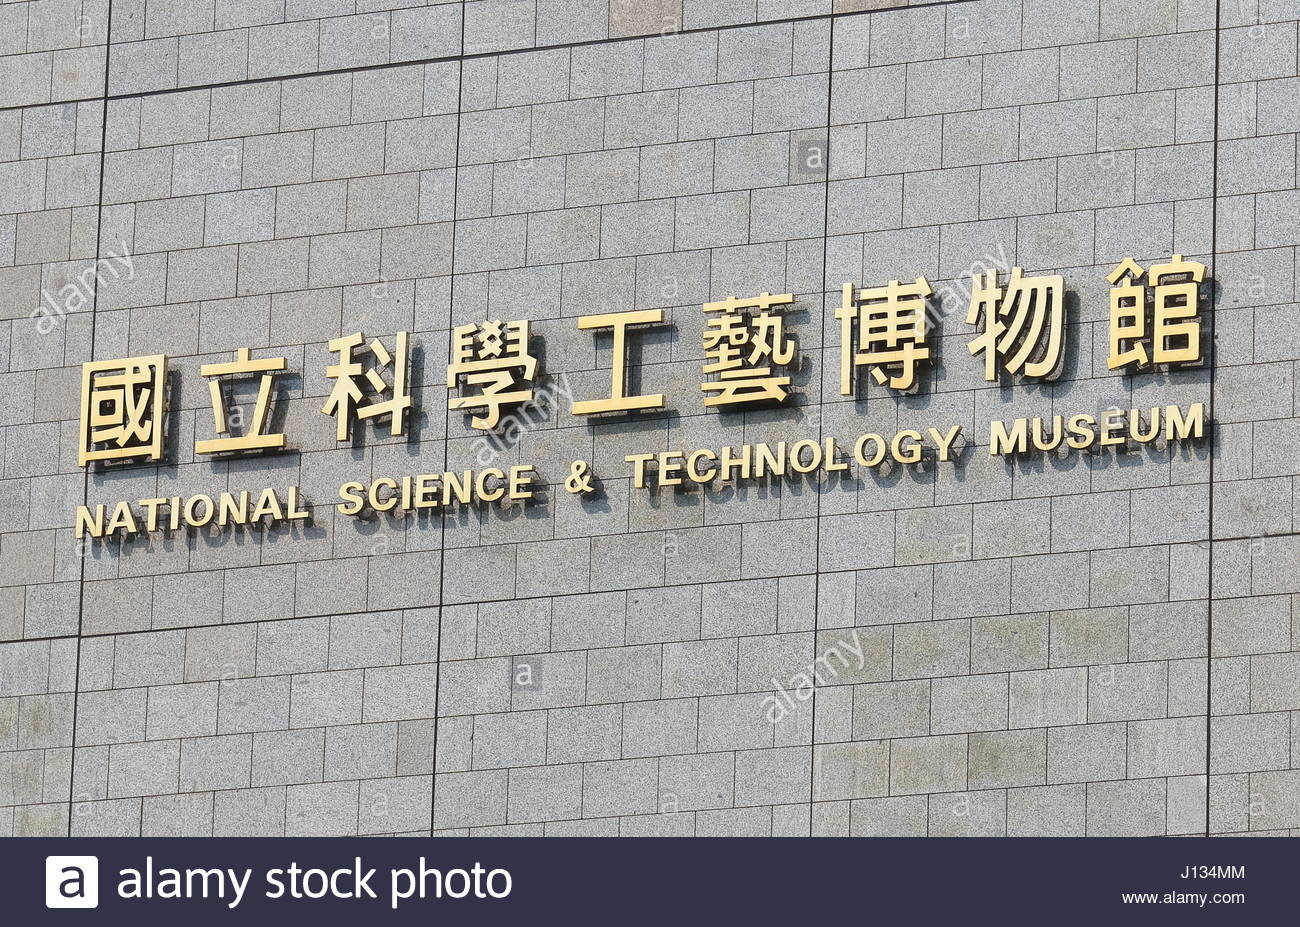 National Science & Technology Museum Kaohsiung, National science and technology museum in Kaohsiung Taiwan ...